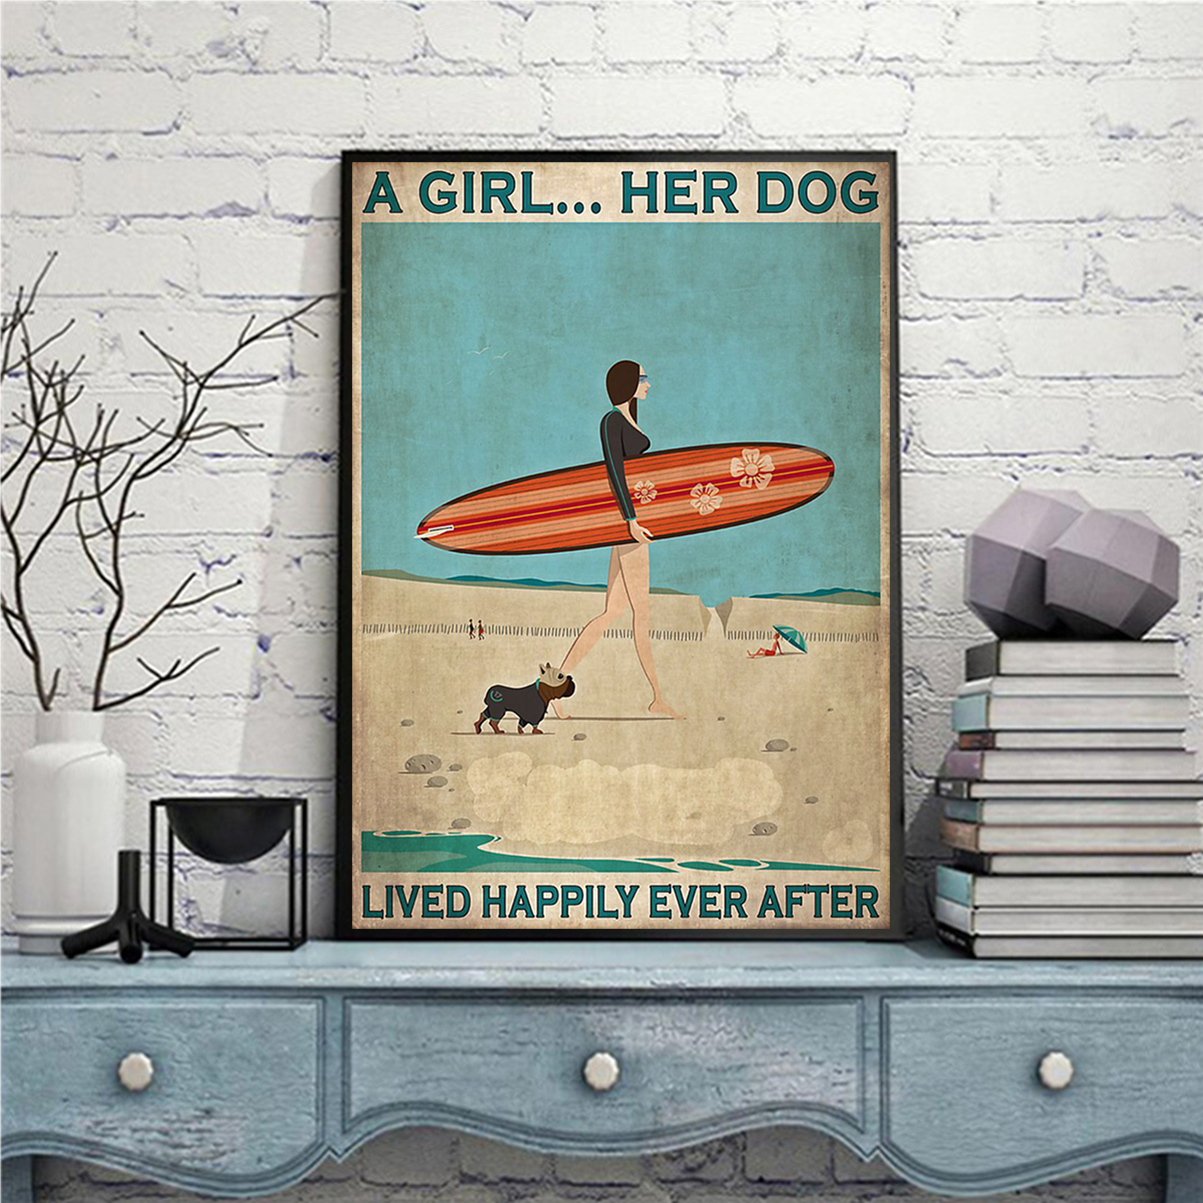 Surfing a girl her dog lived happily ever after poster A1